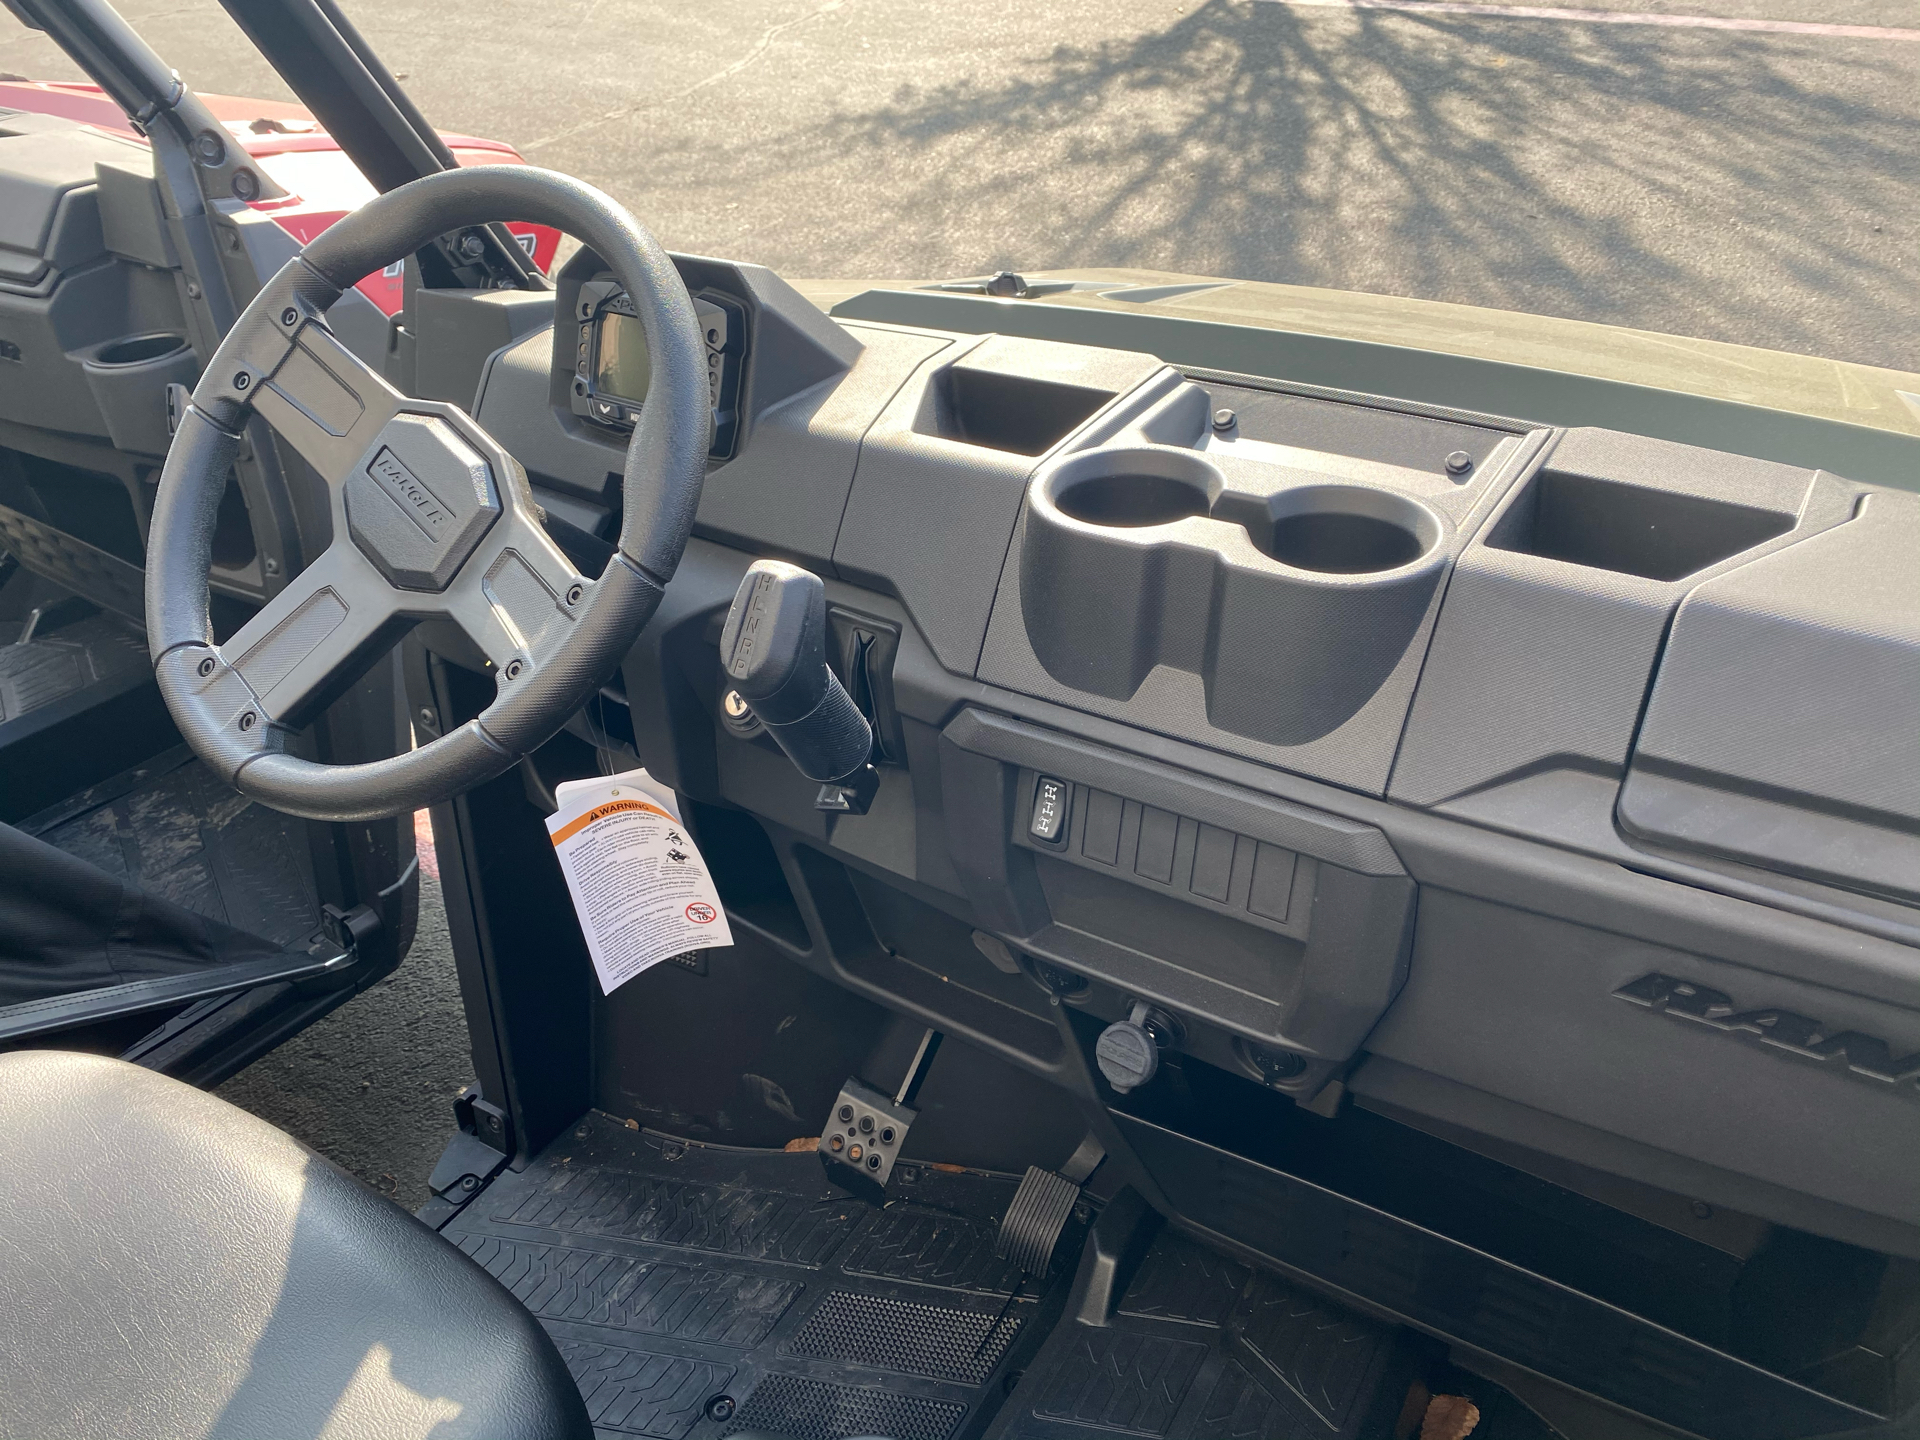 2021 Polaris Ranger 1000 EPS in Elk Grove, California - Photo 20